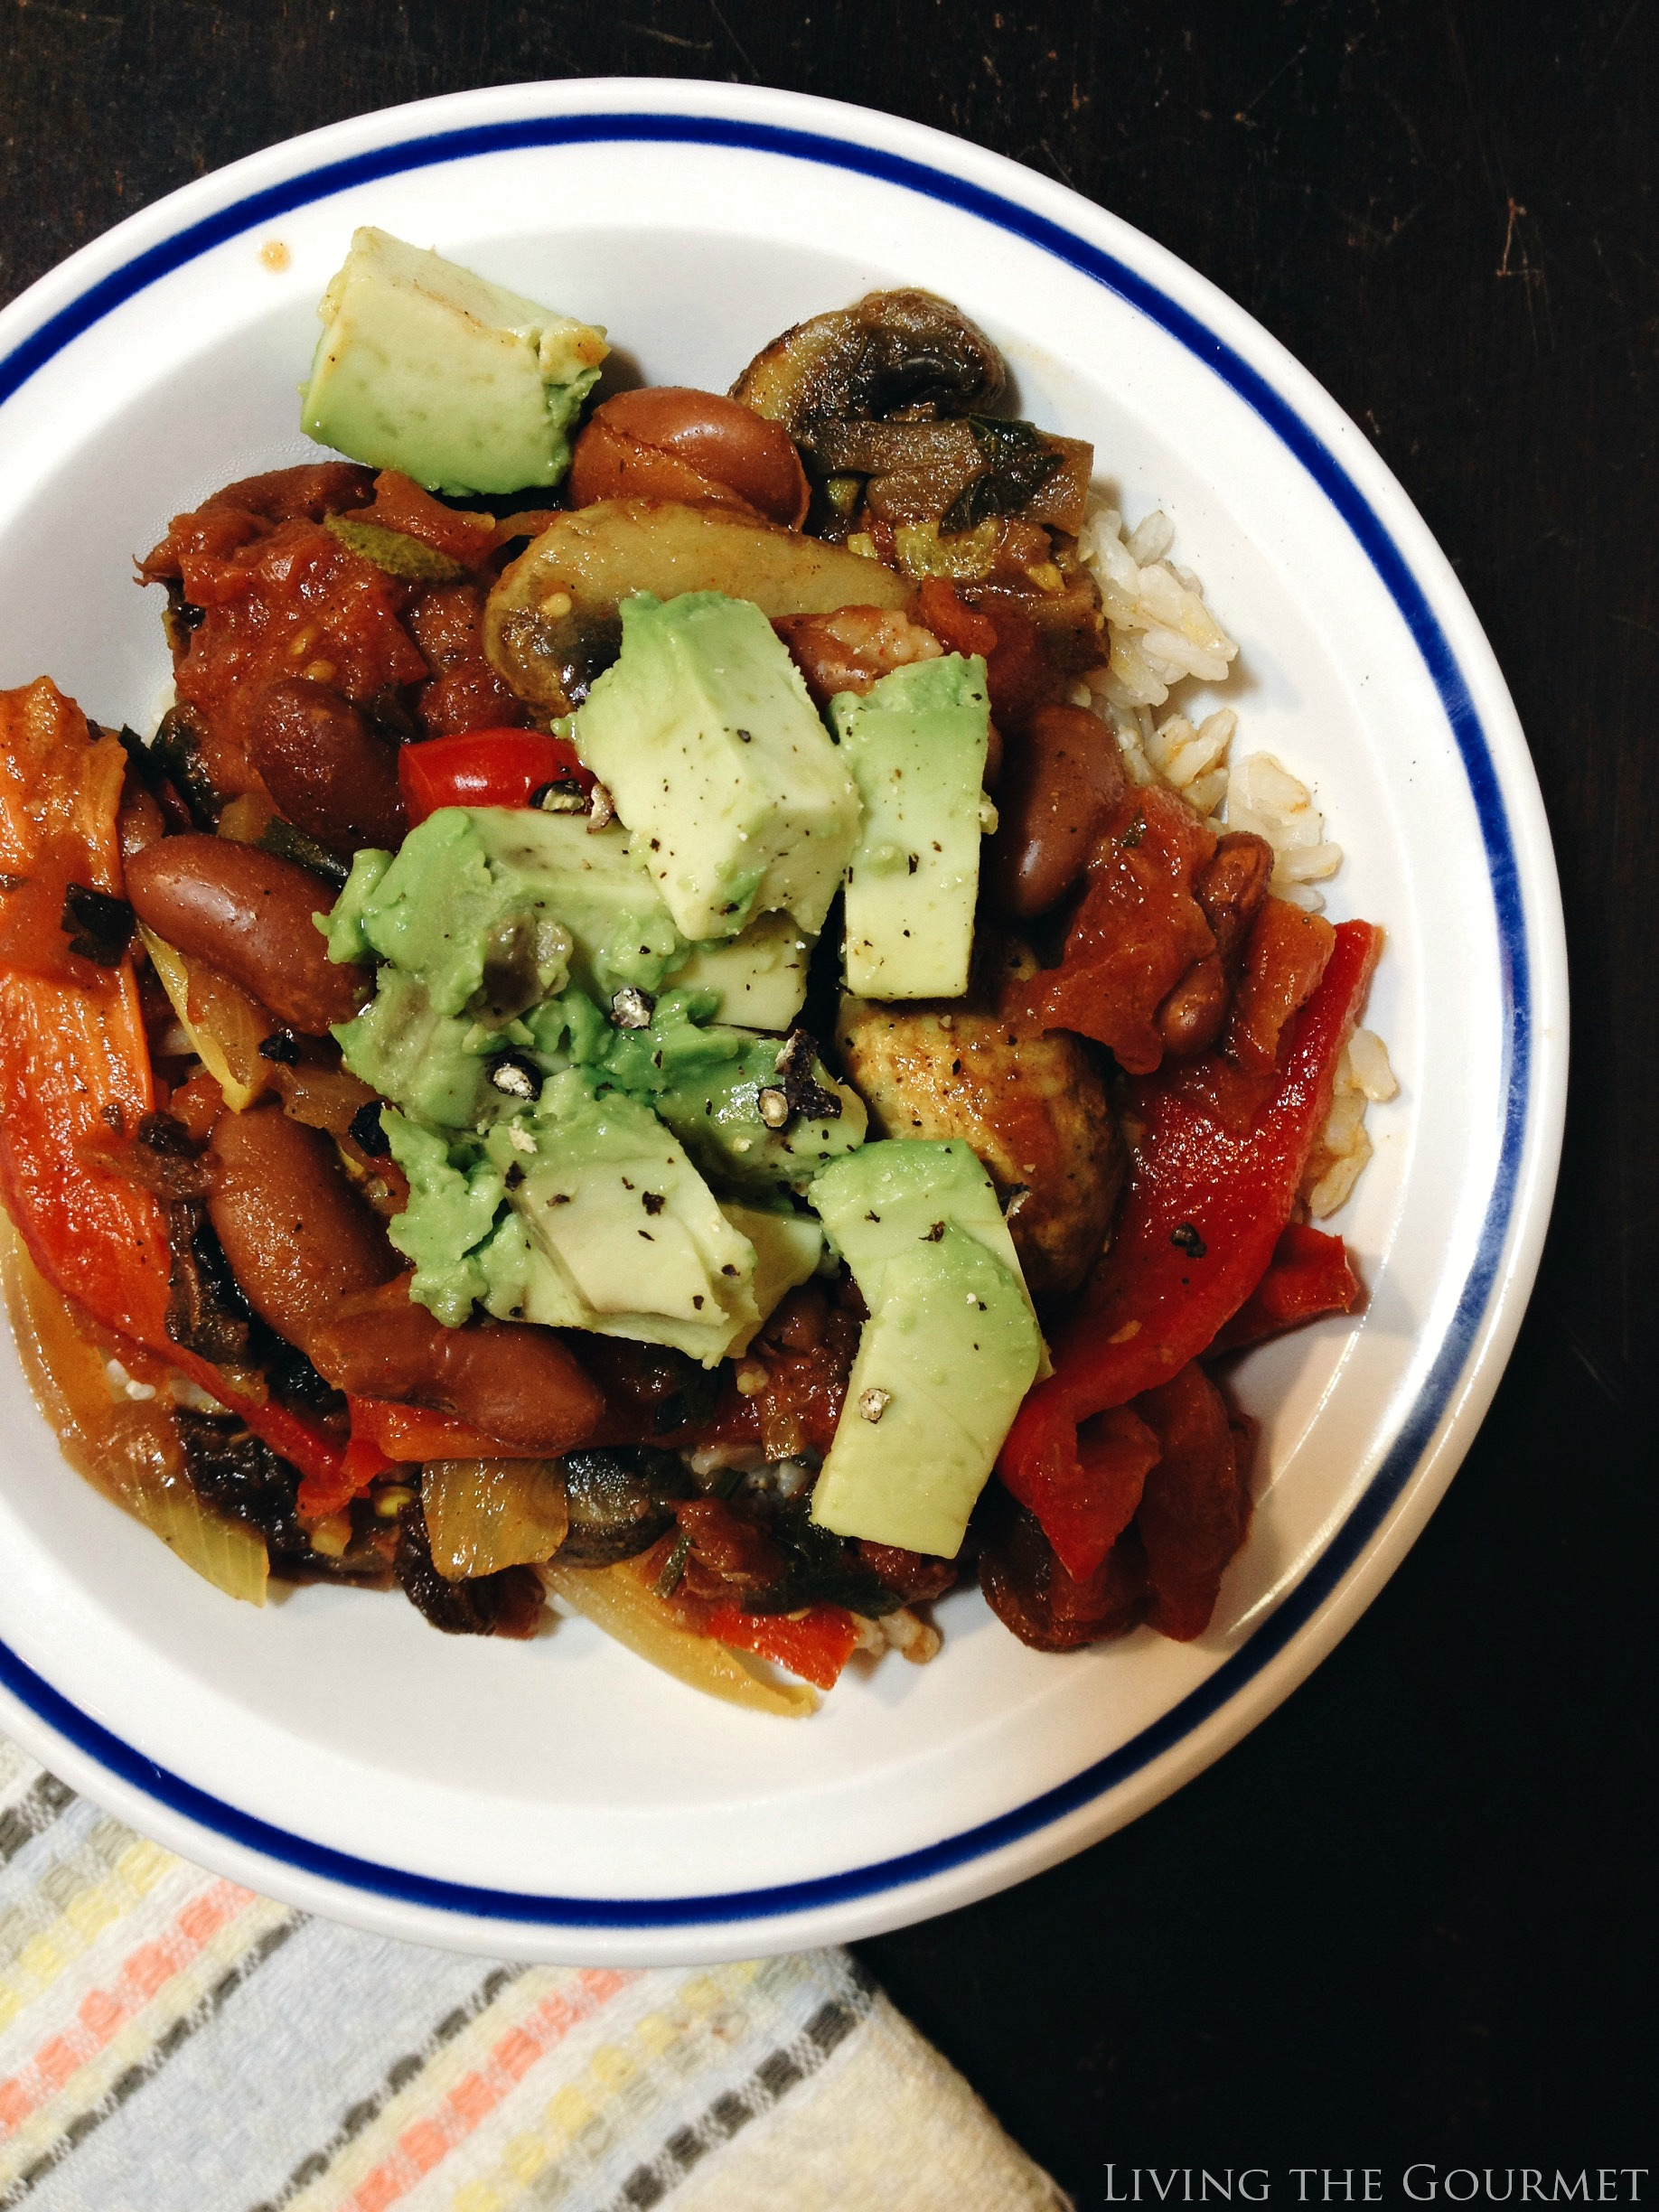 Living the Gourmet: Sweet and Spicy Vegetarian Chili